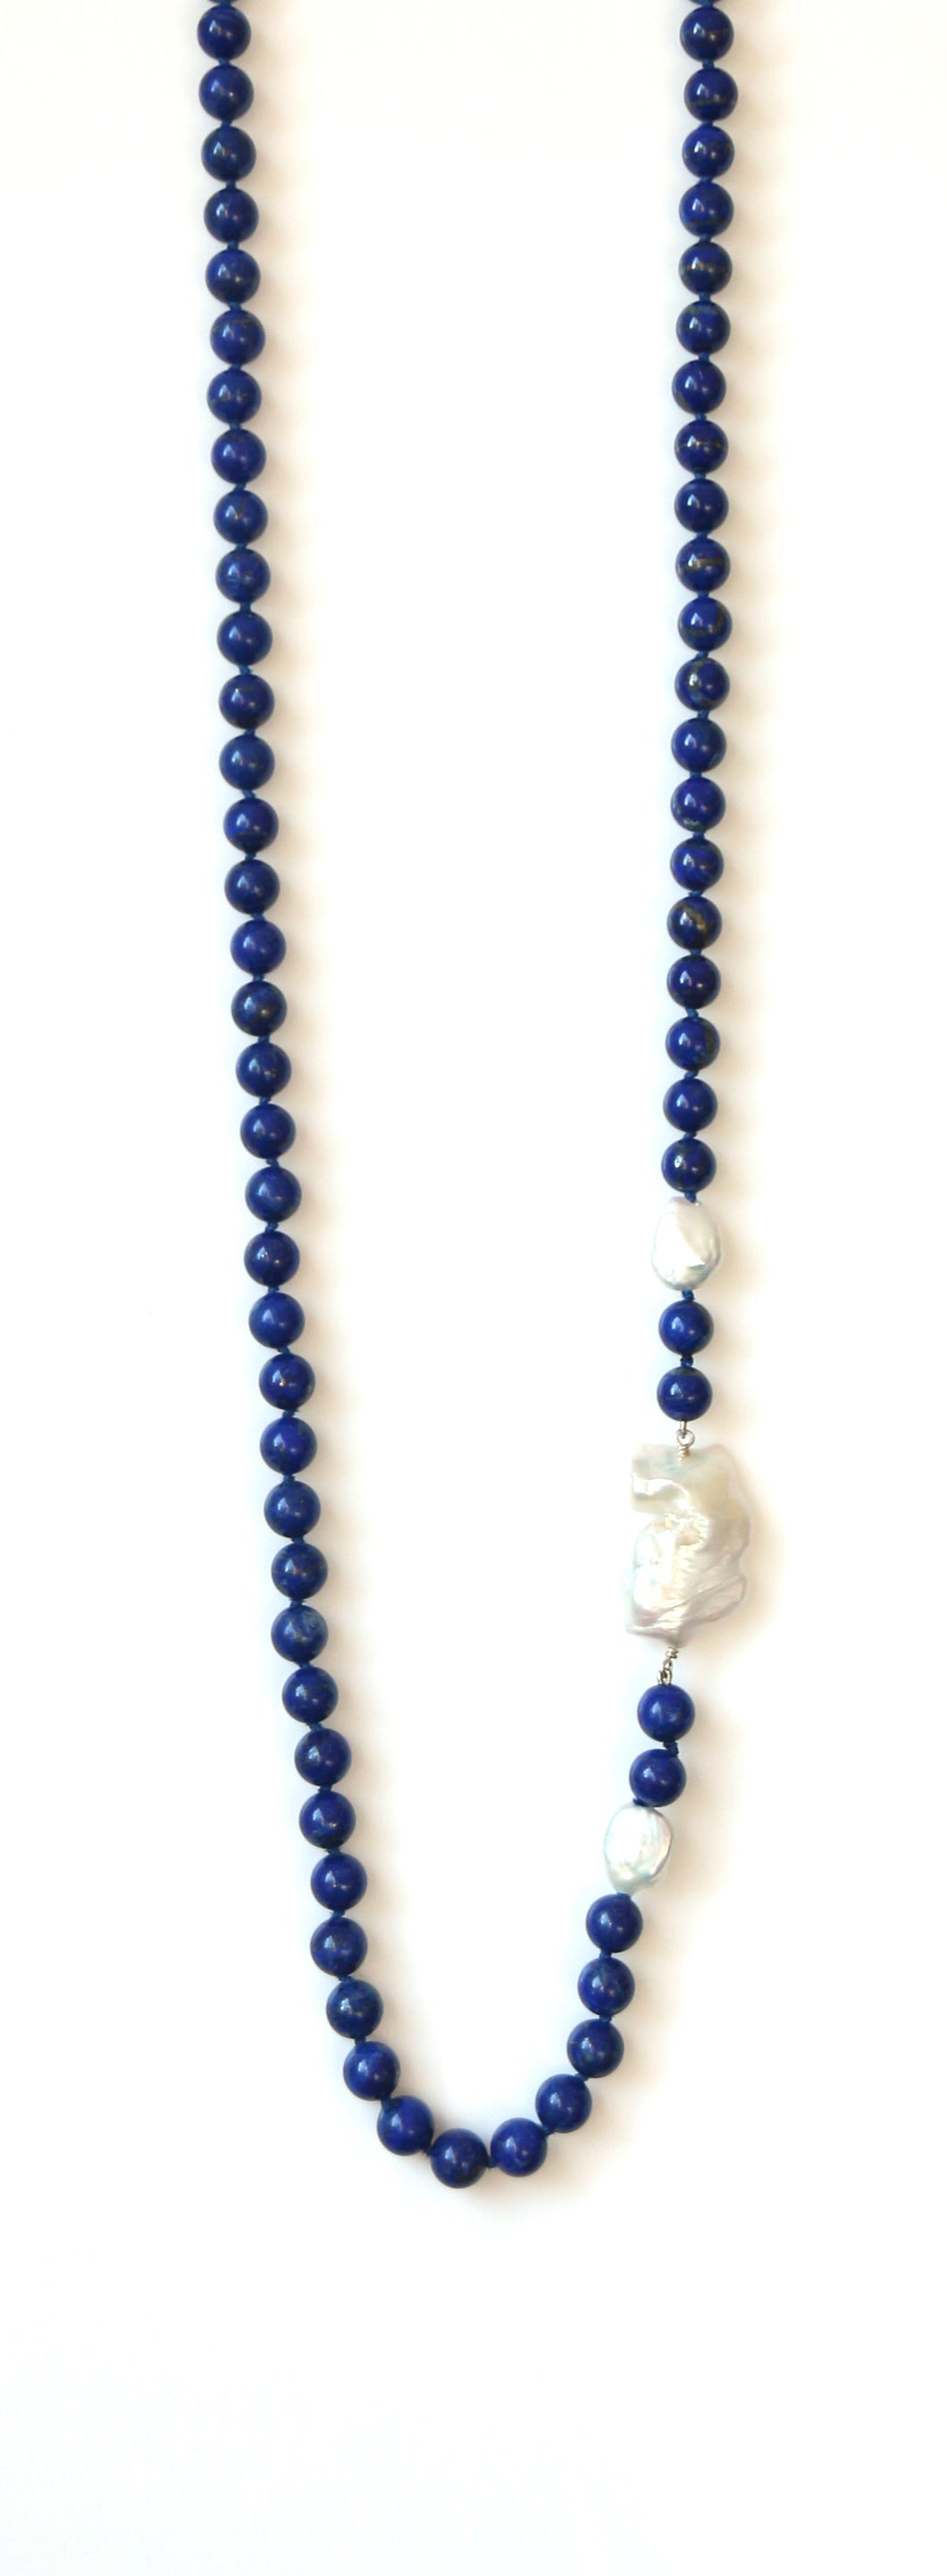 Australian Handmade Blue Necklace with Lapis Lazuli featuring Baroque Pearl Sidepieces